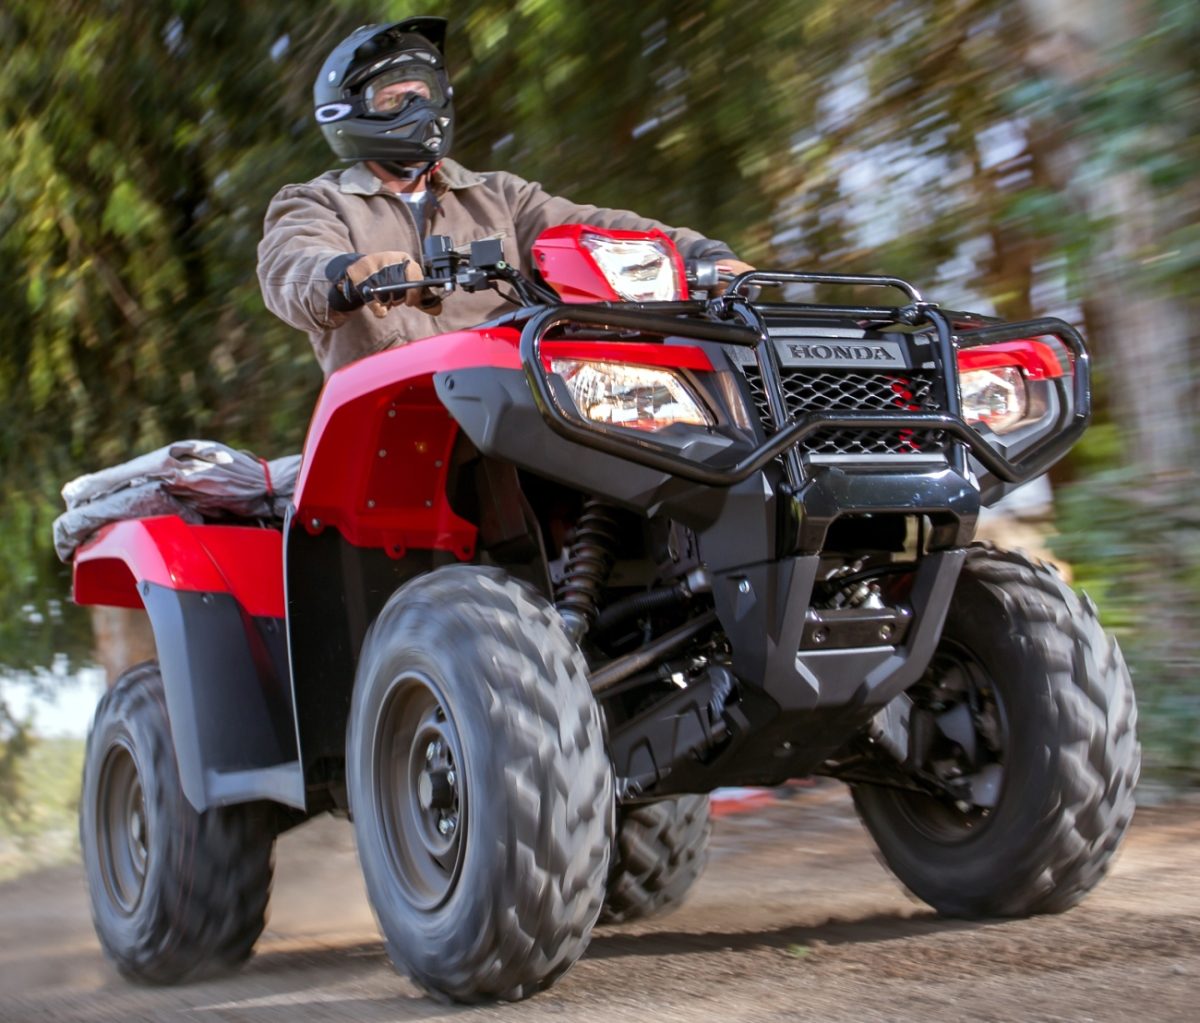 2018 honda rubicon 500 dct atv review of specs features. Black Bedroom Furniture Sets. Home Design Ideas